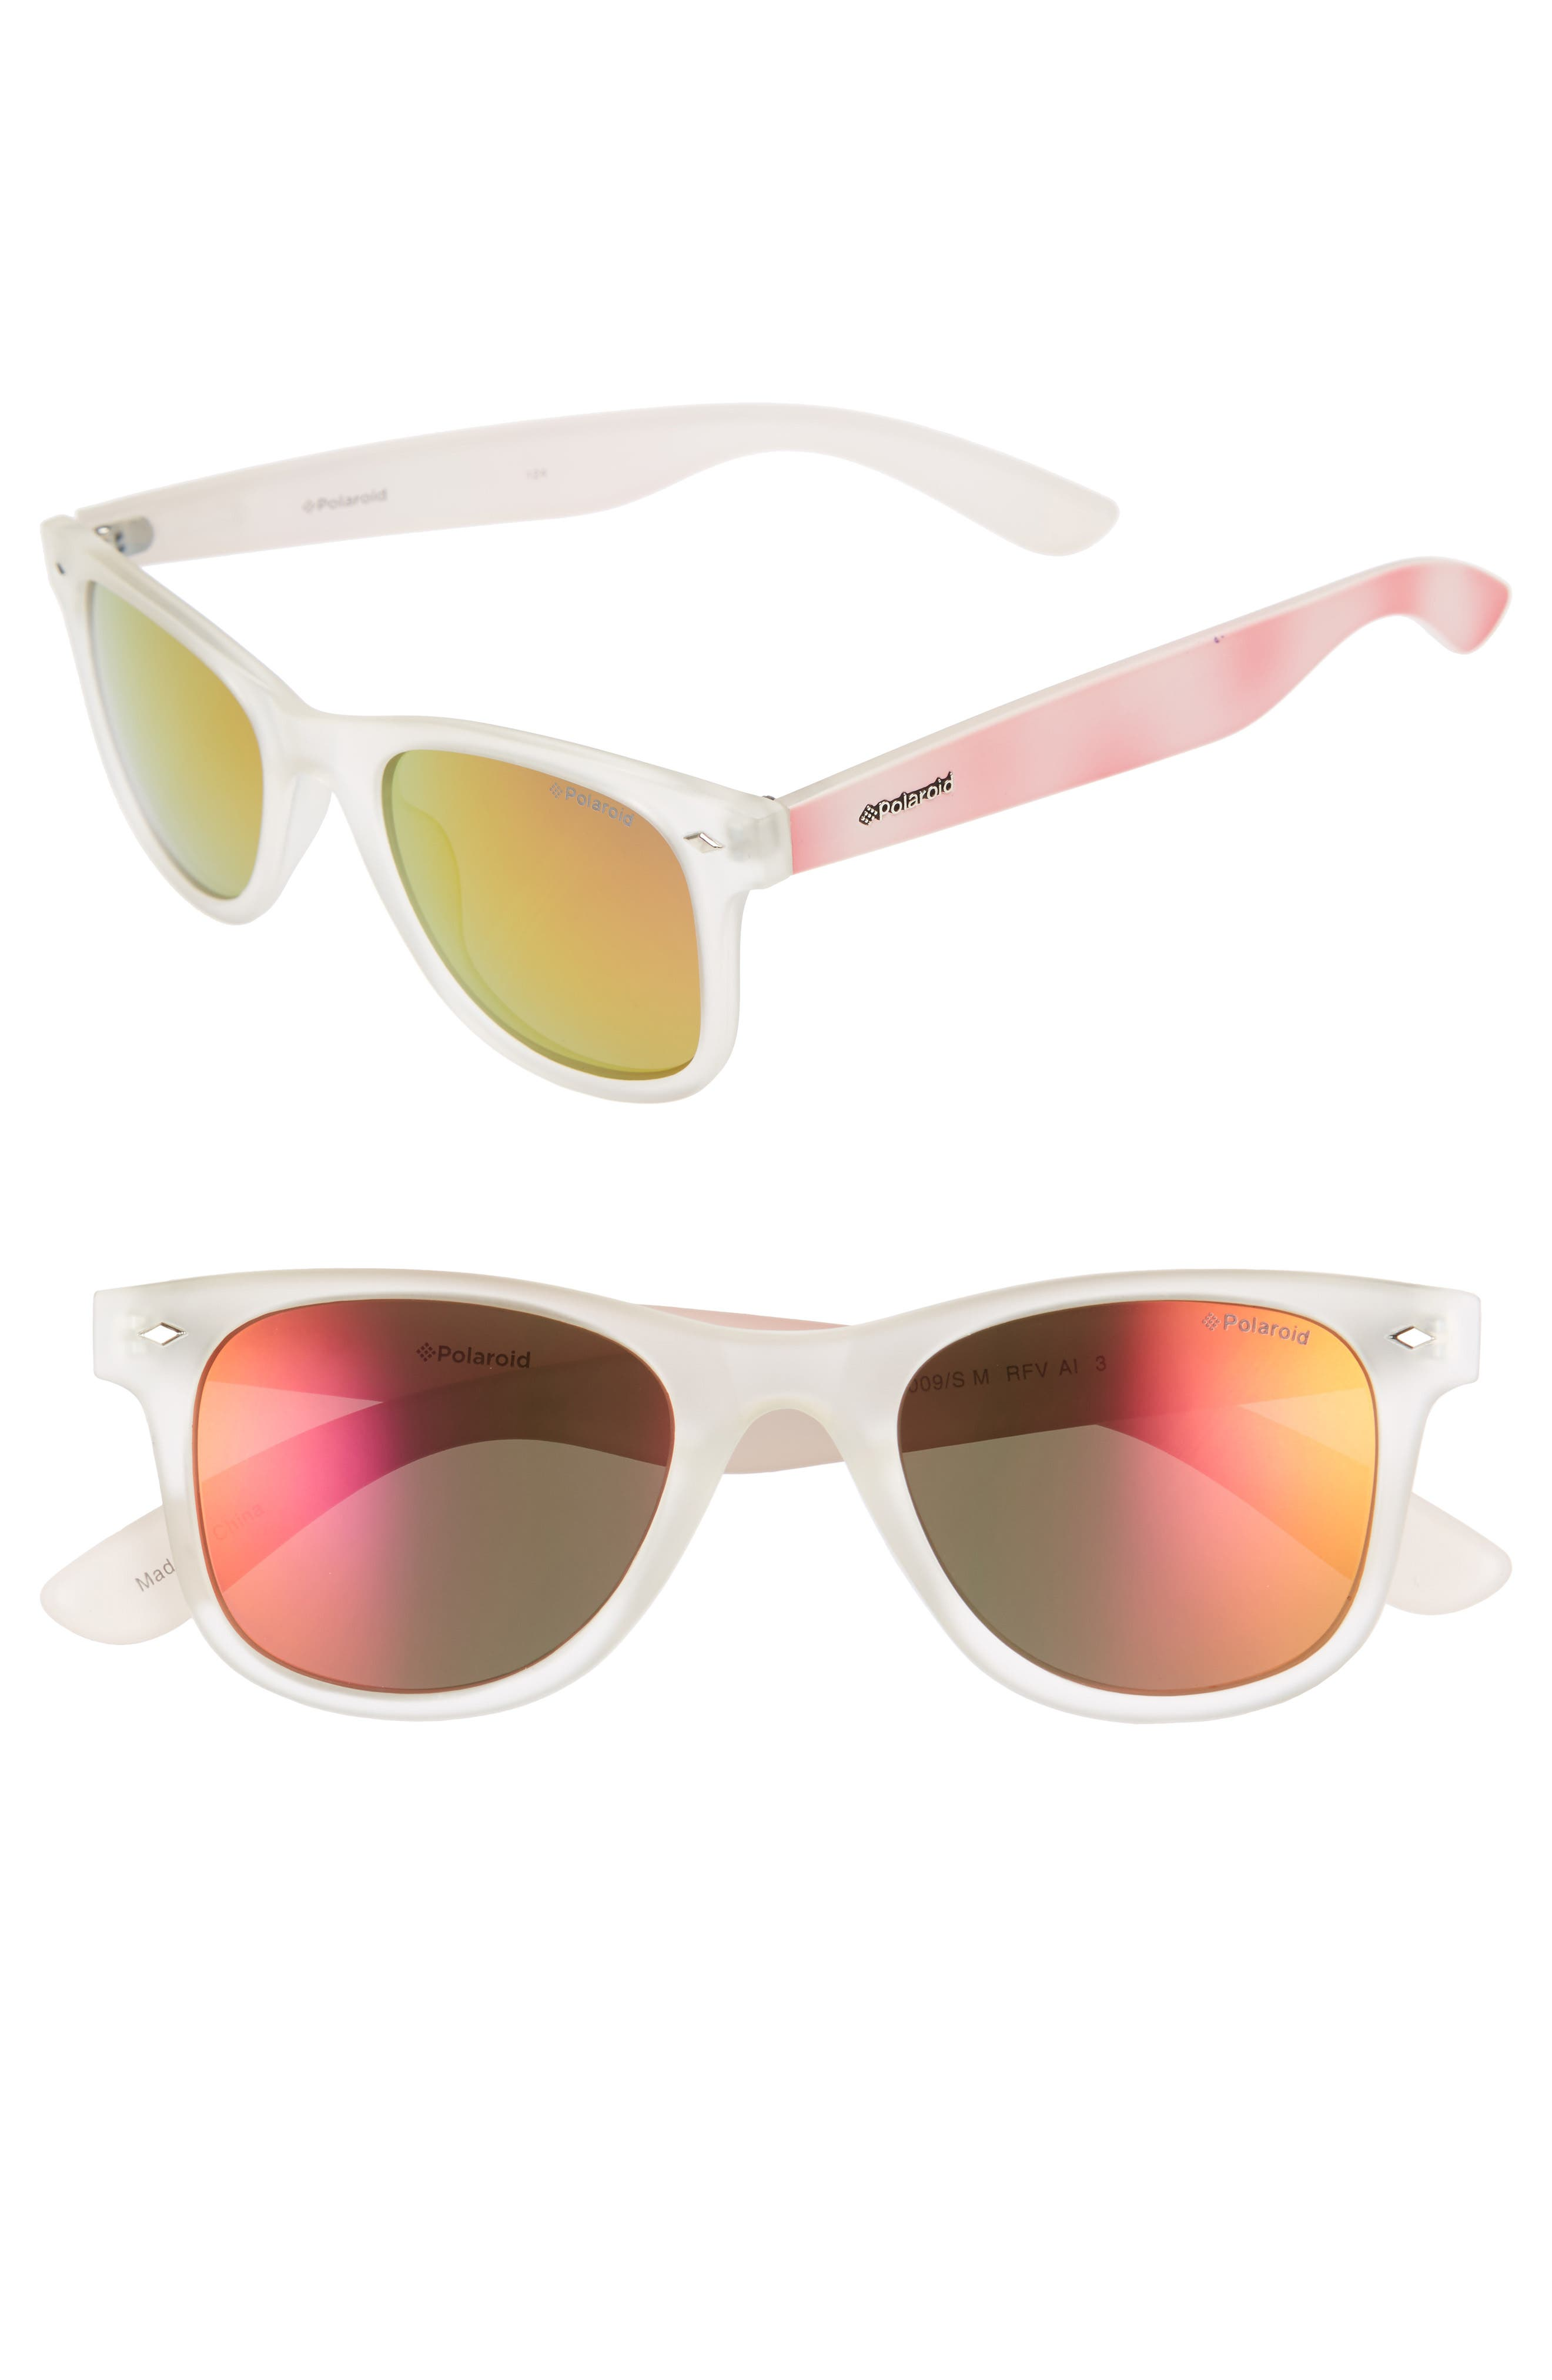 50mm Polarized Sunglasses,                         Main,                         color, Bright Pink